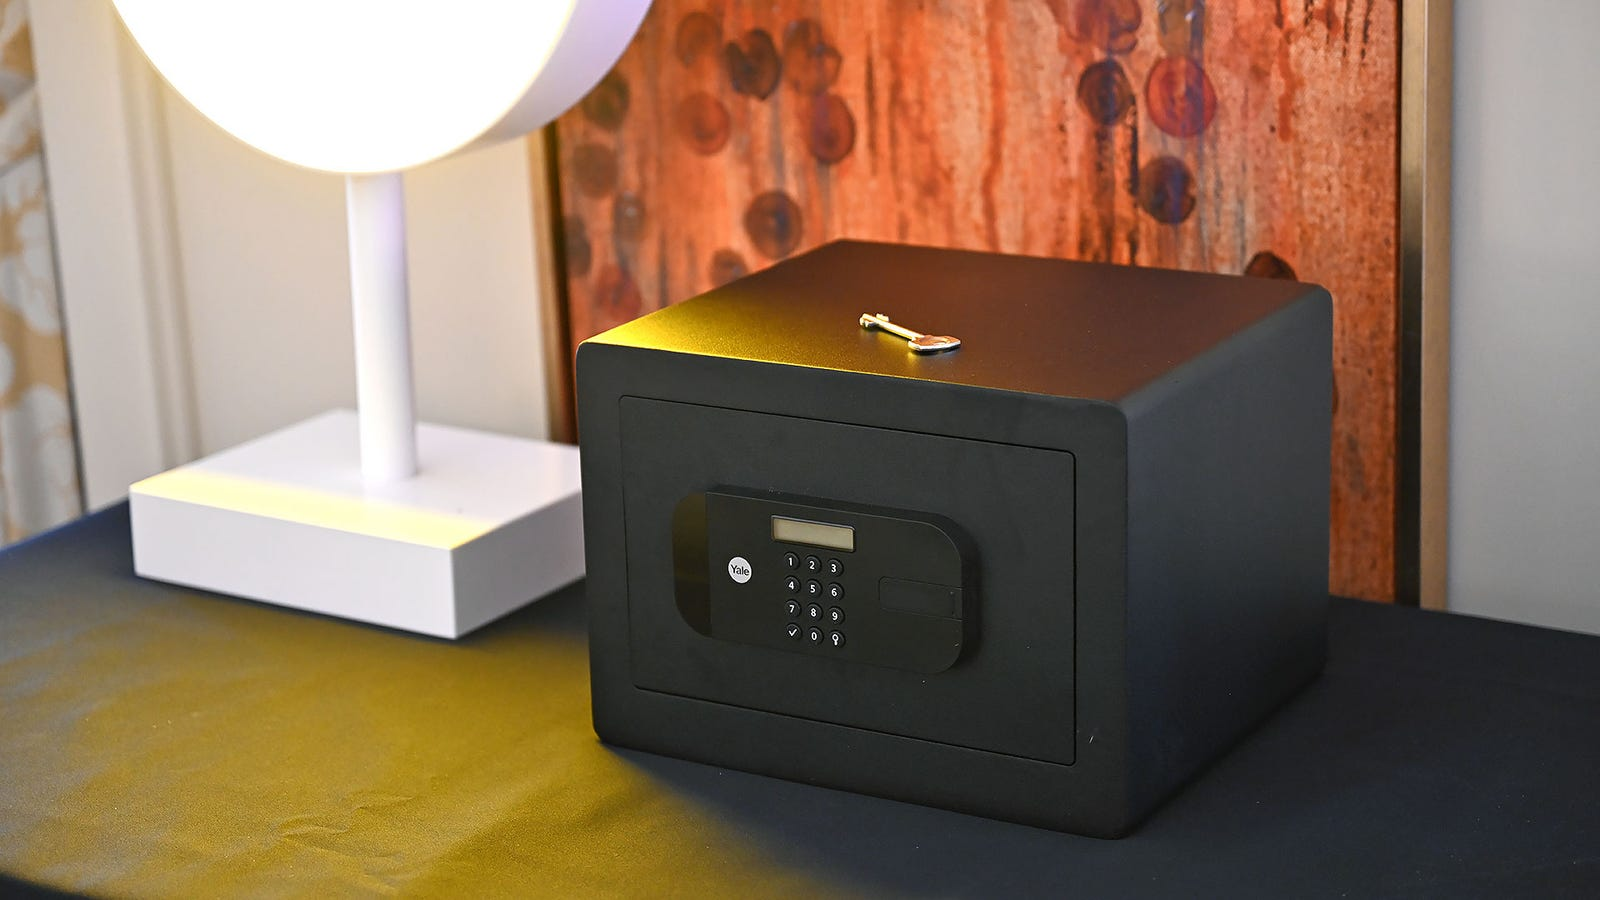 Finally, the Smart Safe is pretty much a standard safe with built-in Bluetooth support (and wi-fi when paired with a $50 bridge).